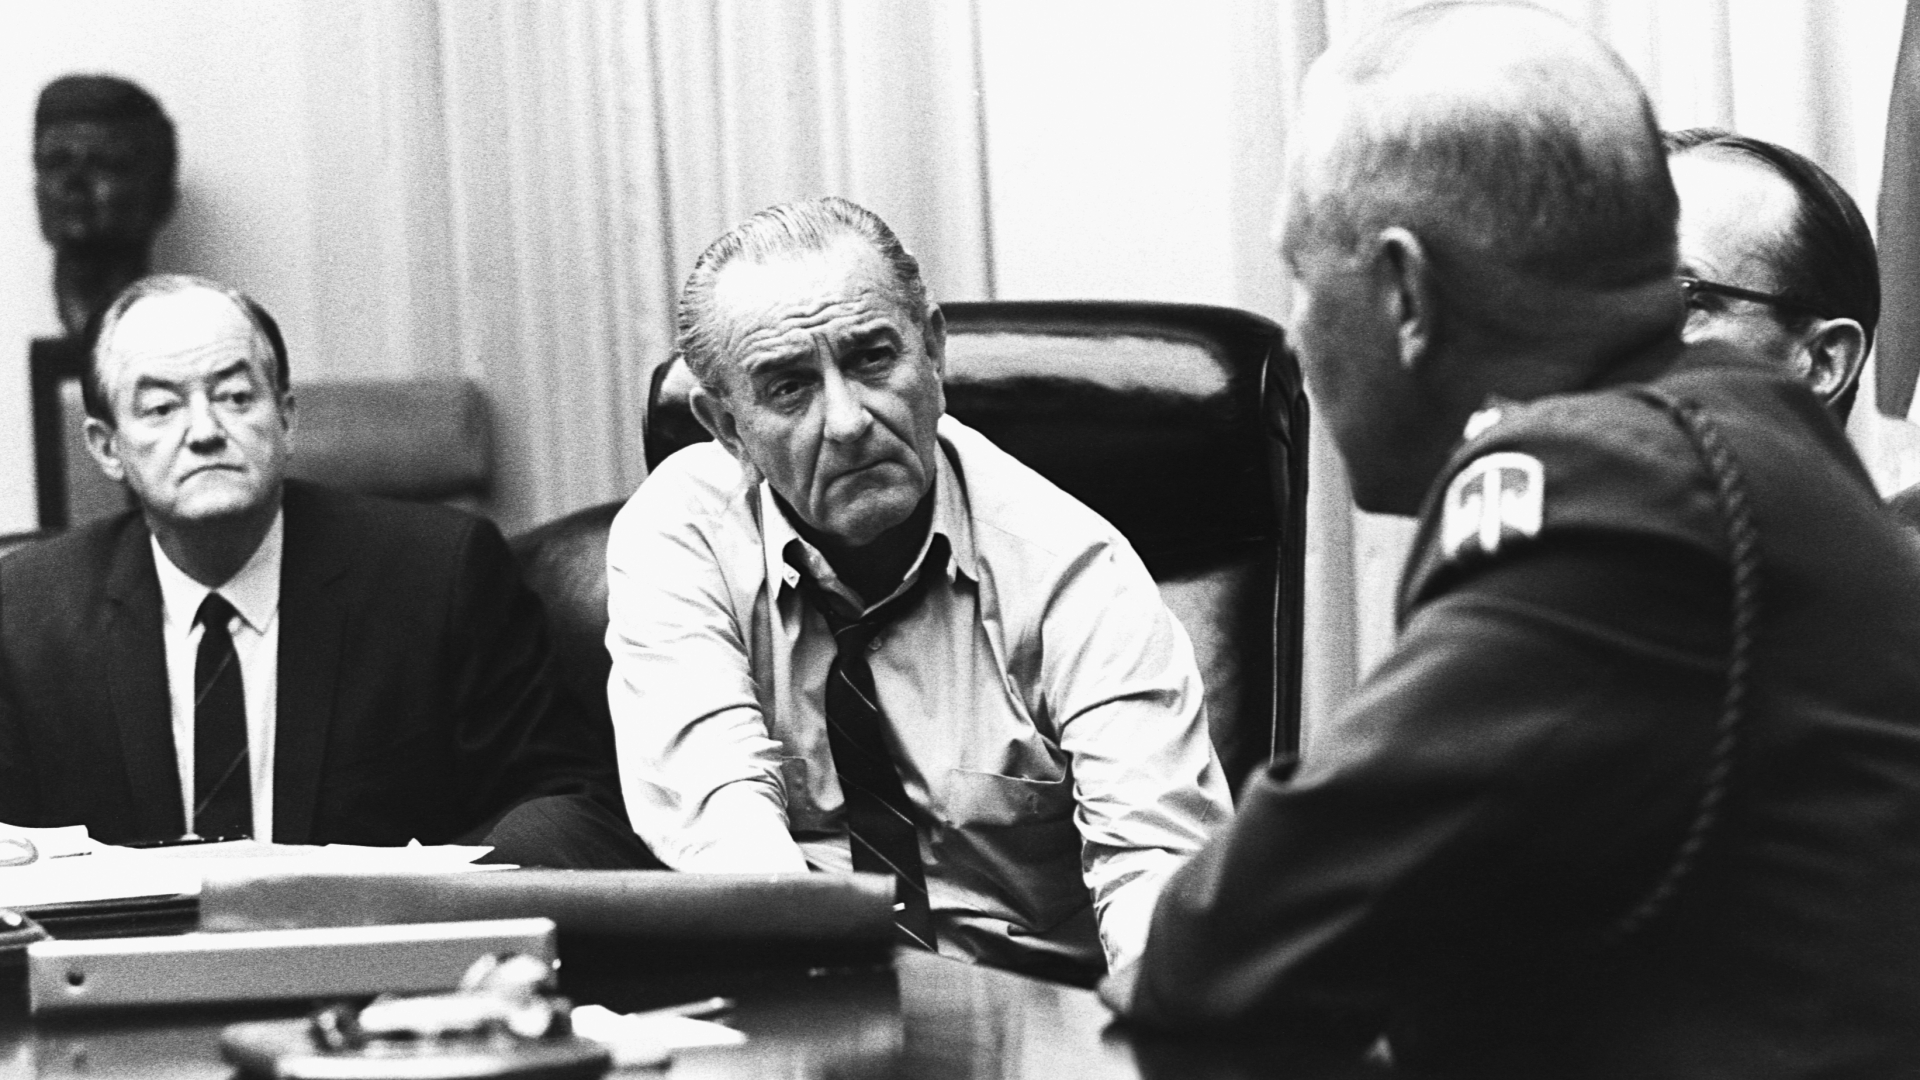 justifying president lyndon b johnson in sending troops into vietnam F ifty years ago today, president lyndon b johnson appeared on prime-time television to tell the nation that he was sending 50,000 additional american troops to vietnam.